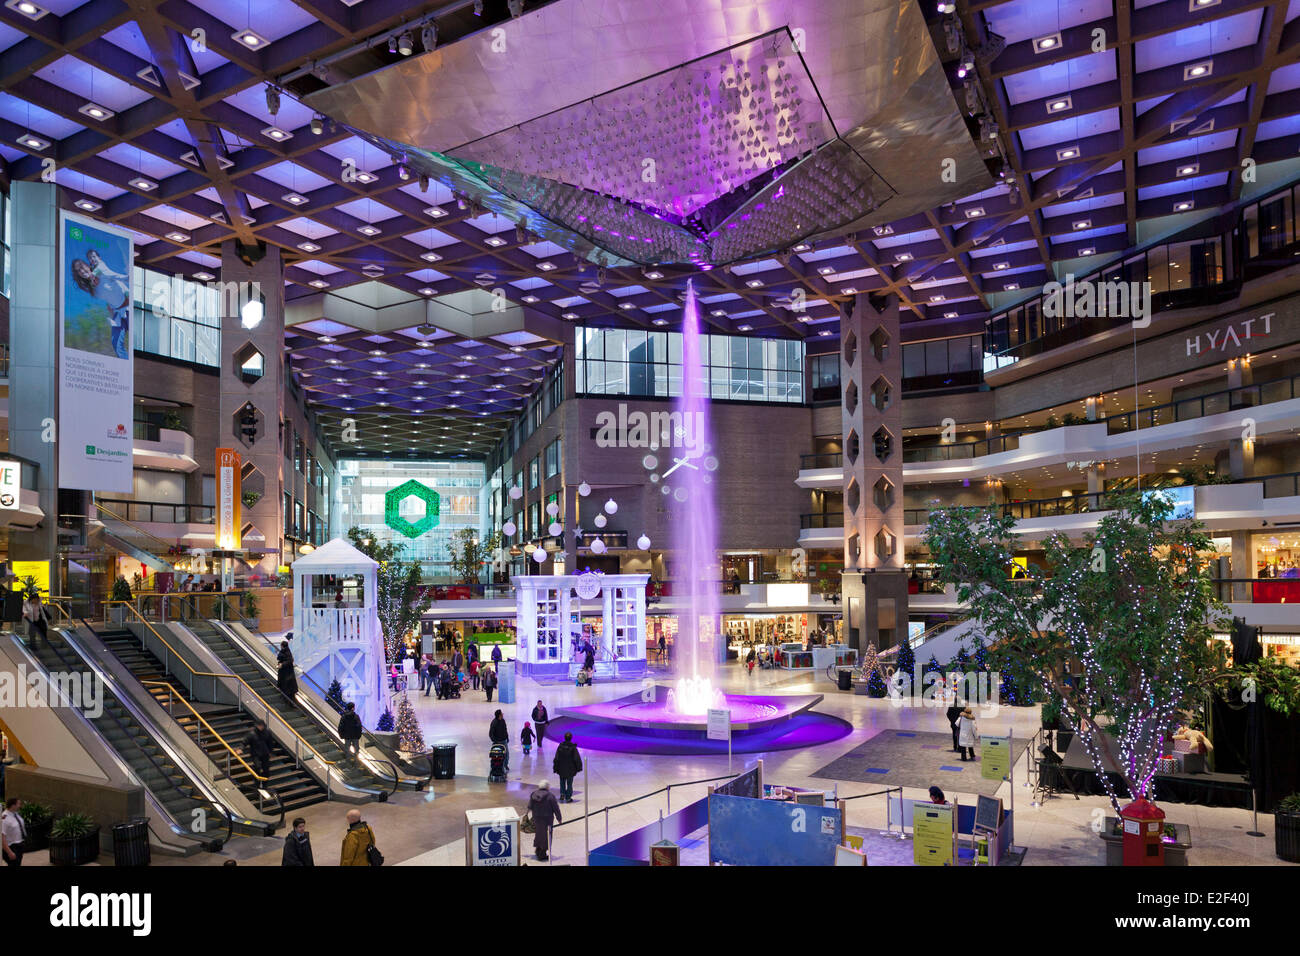 Canada, Quebec province, Montreal, the Underground City, the commercial center Complexe Desjardins - Stock Image